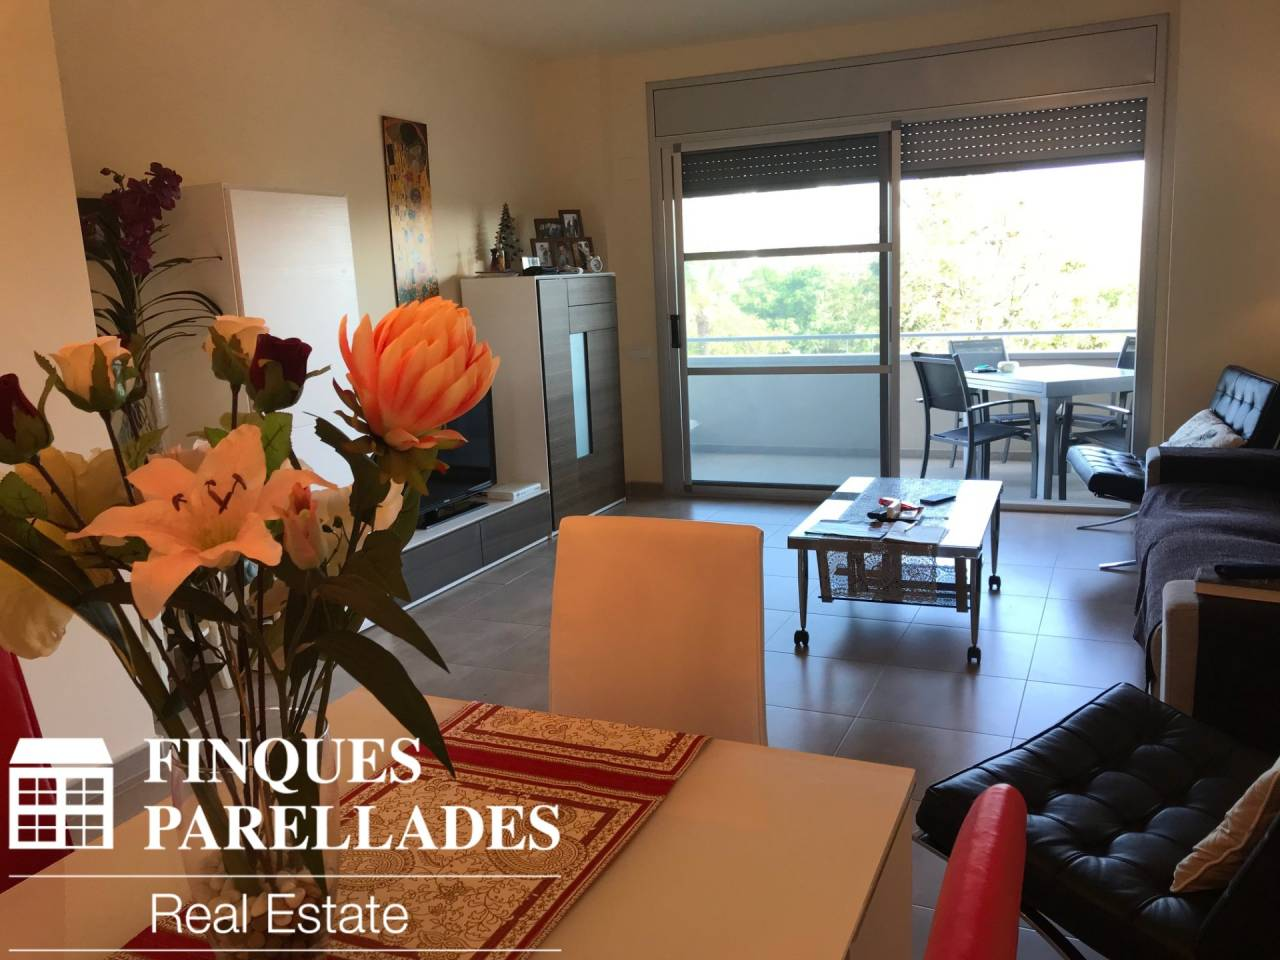 Beautiful furnished house in Sitges with parking, elevator and communal pool. La Plana Est or Can Robert area.